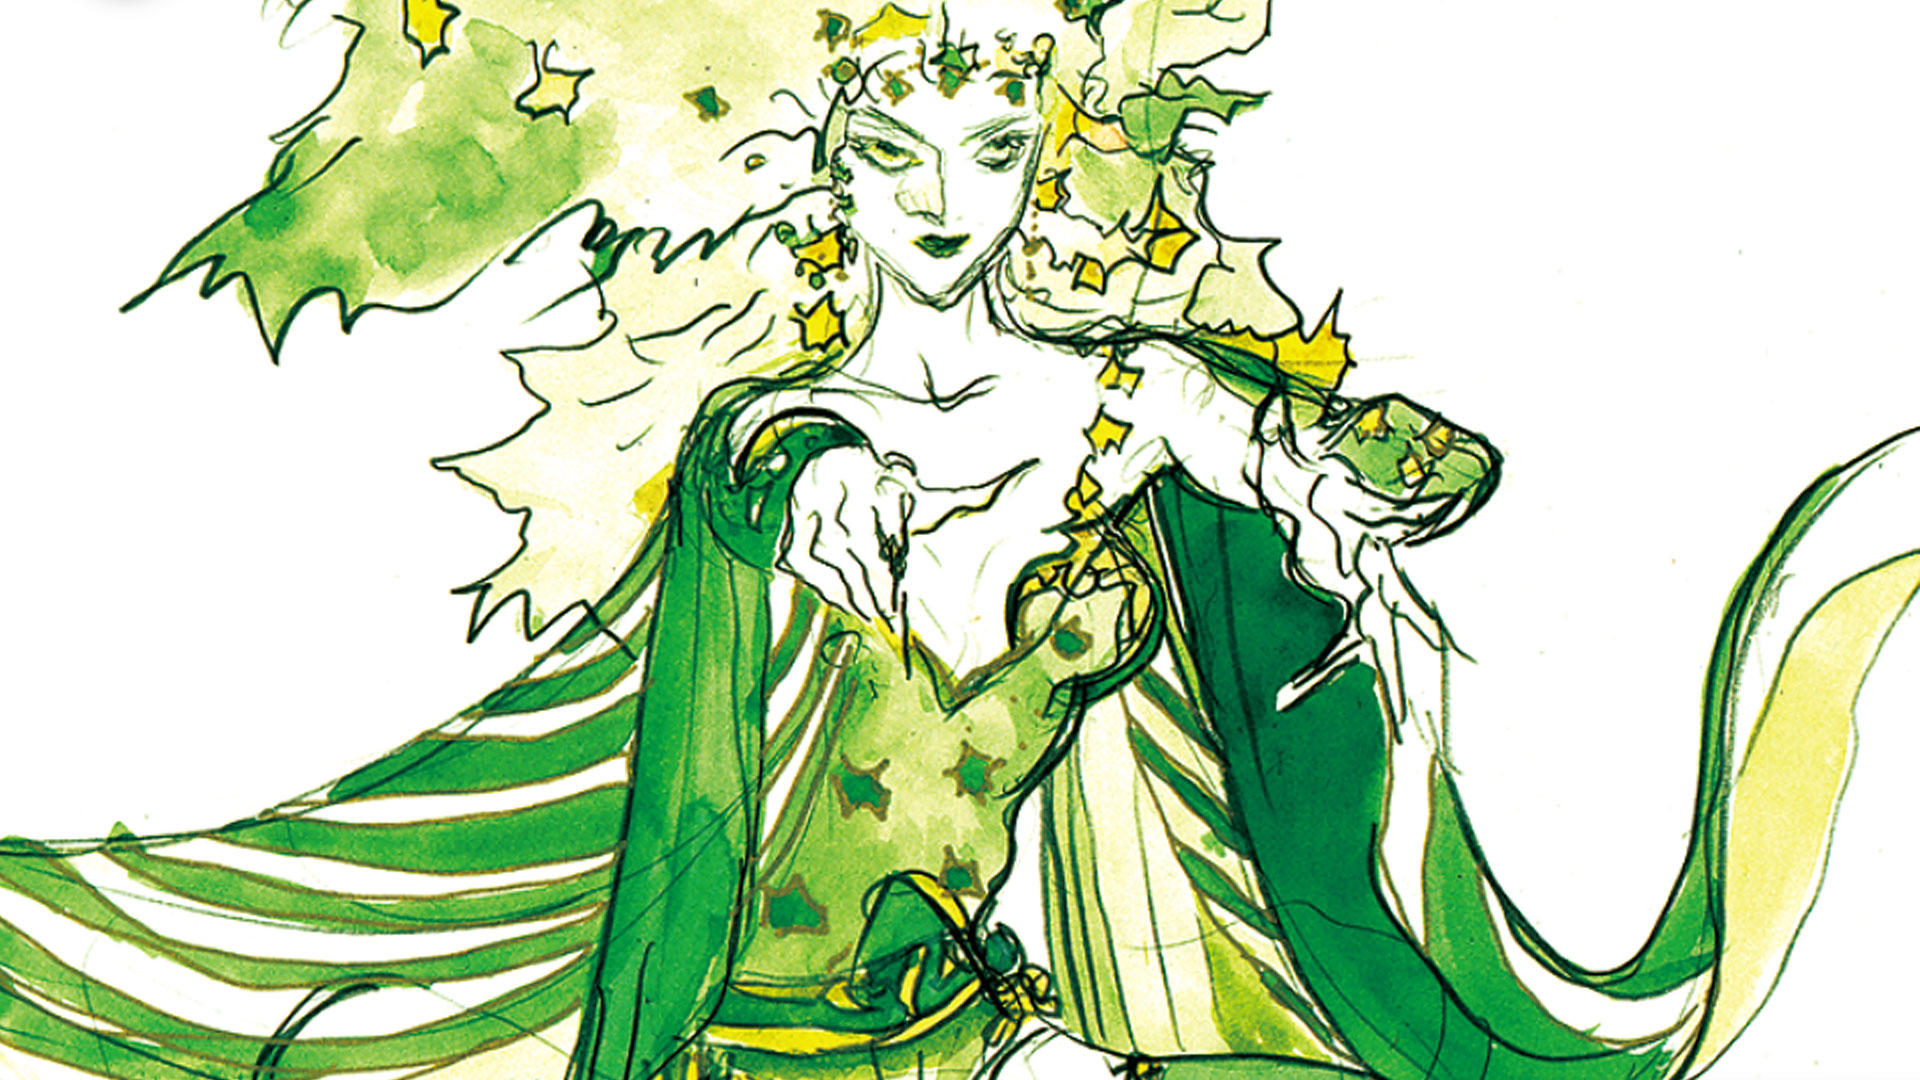 Crystal Dominion Card of the Week: Rydia